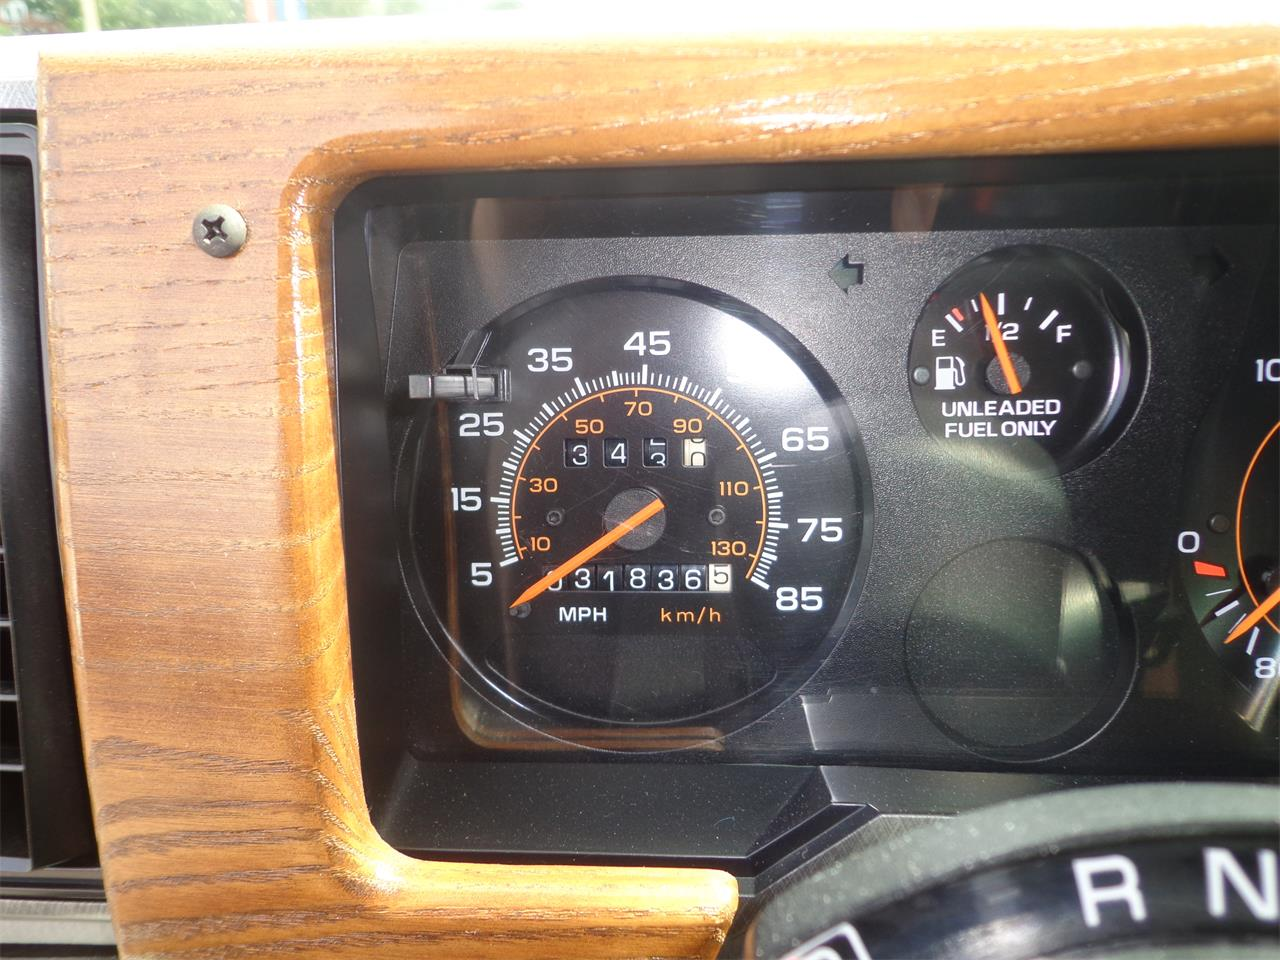 1995 Chevrolet G20 for sale in Mill Hall, PA – photo 10